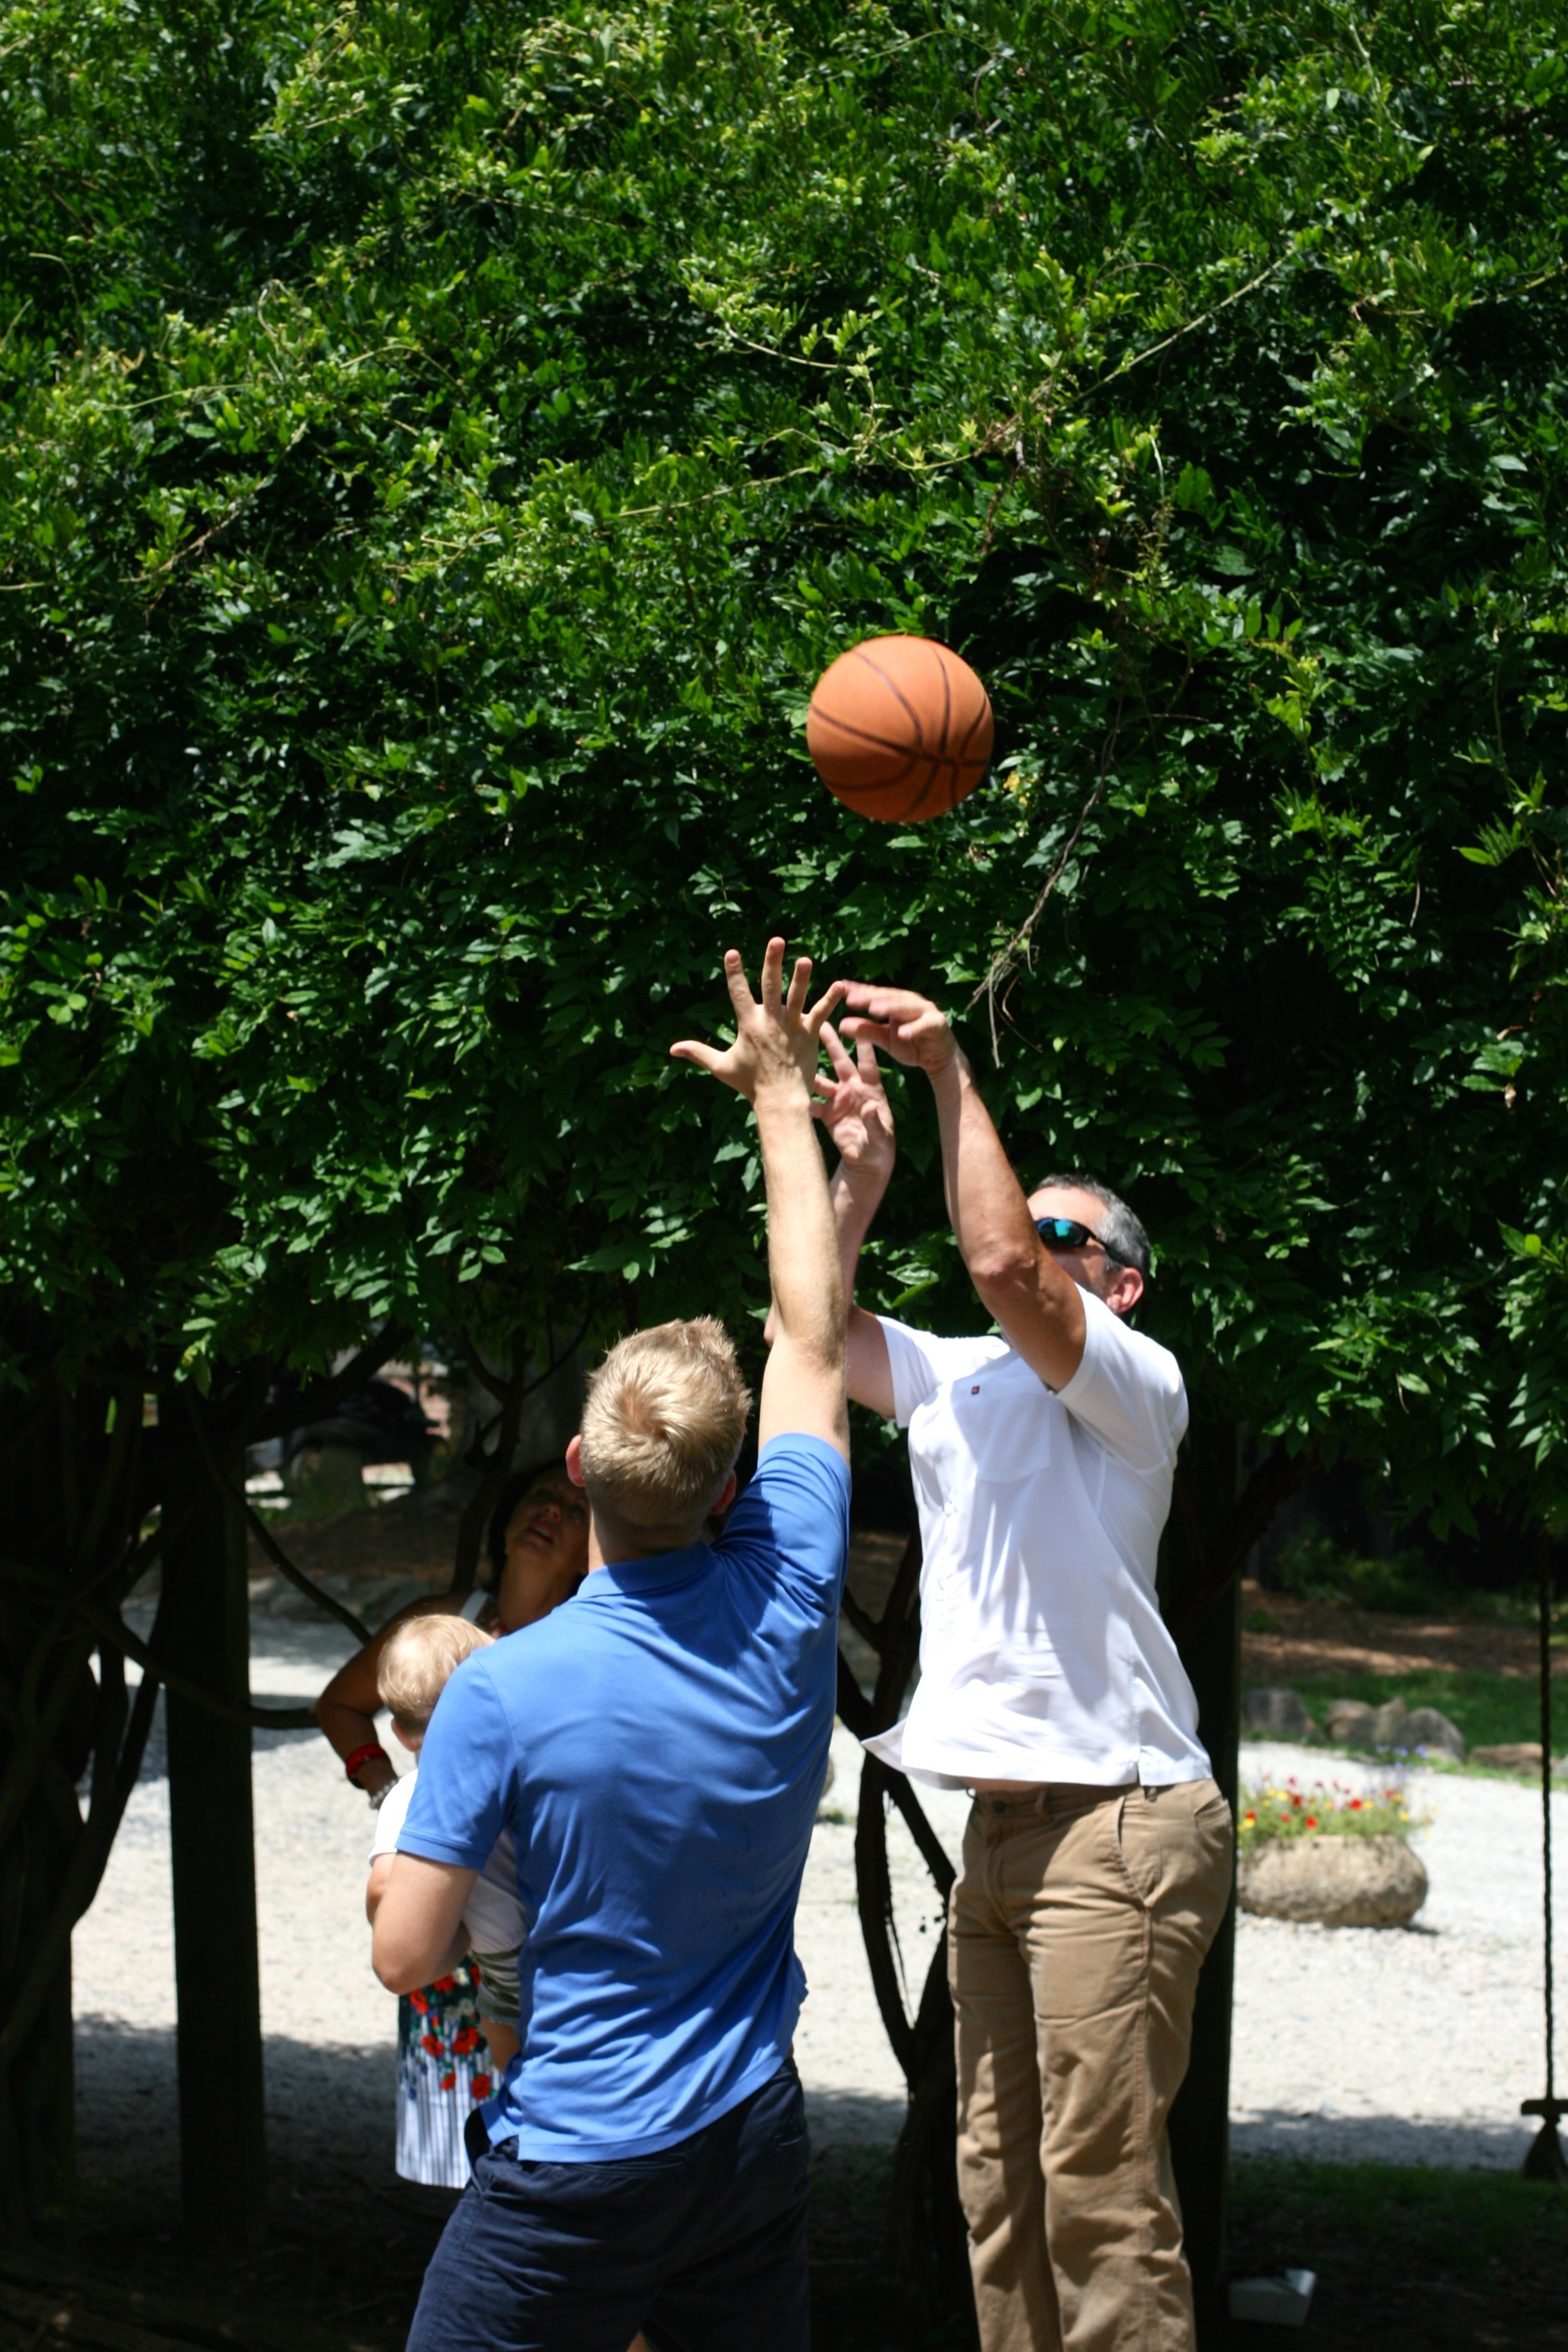 My dad, Stevie and Everett shooting hoops. The best.